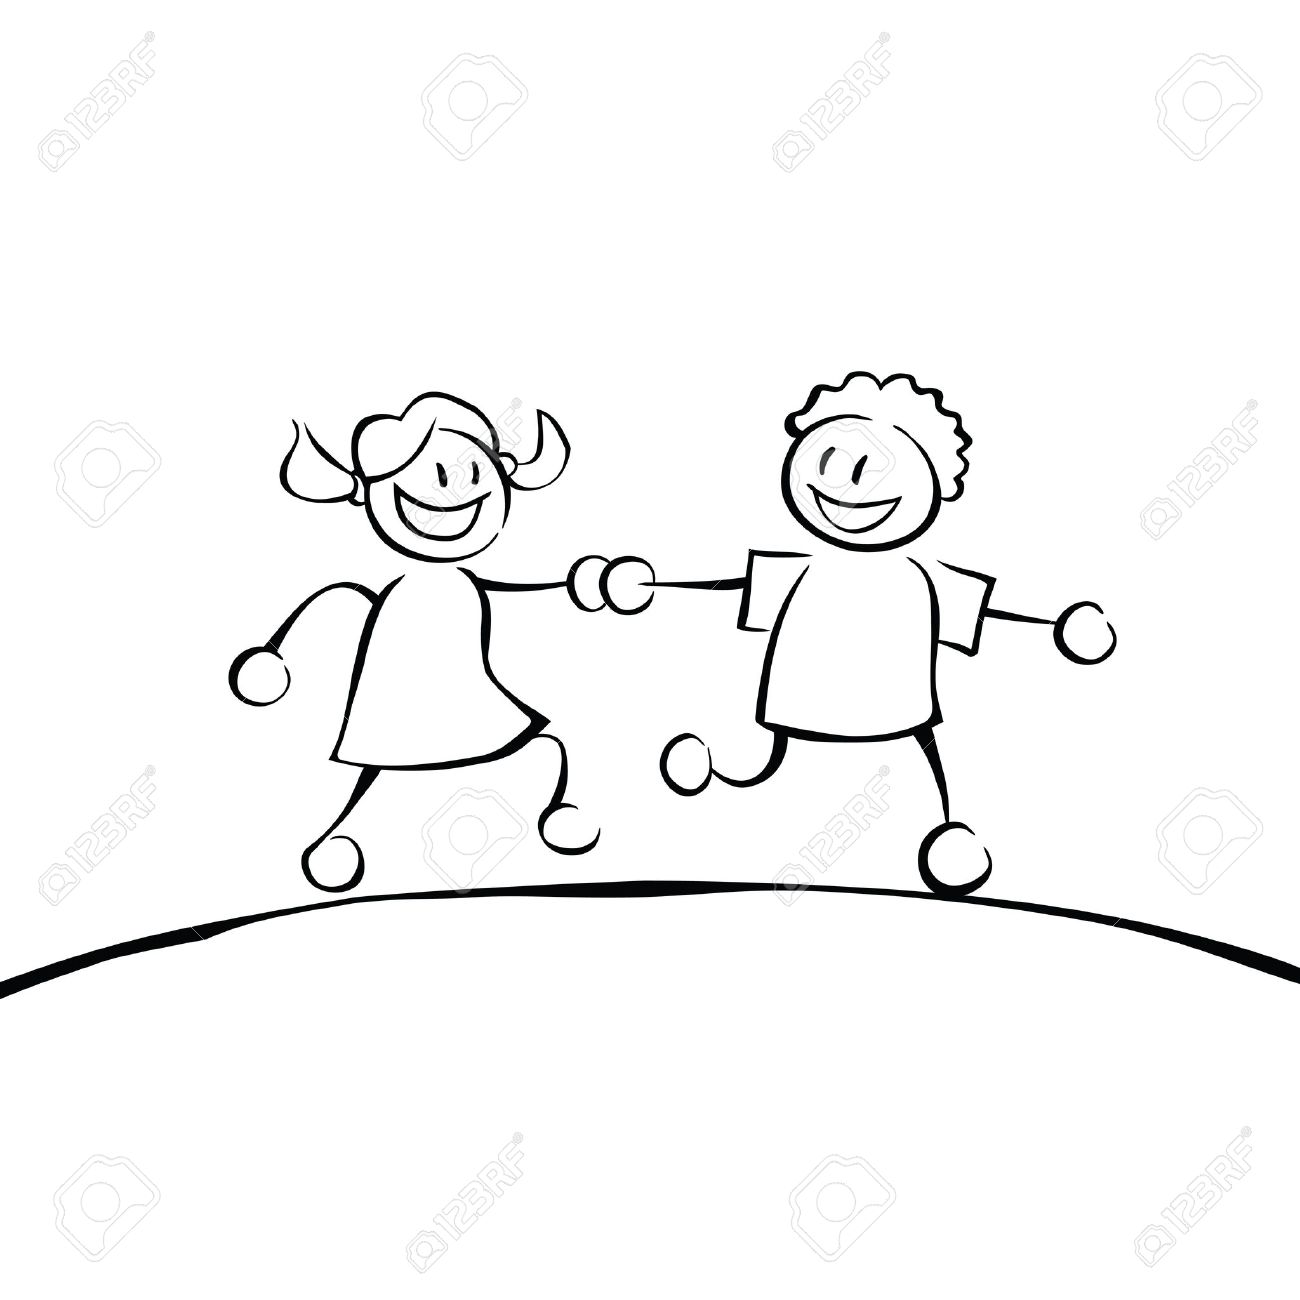 two black and white kids holding hands and running on a hill